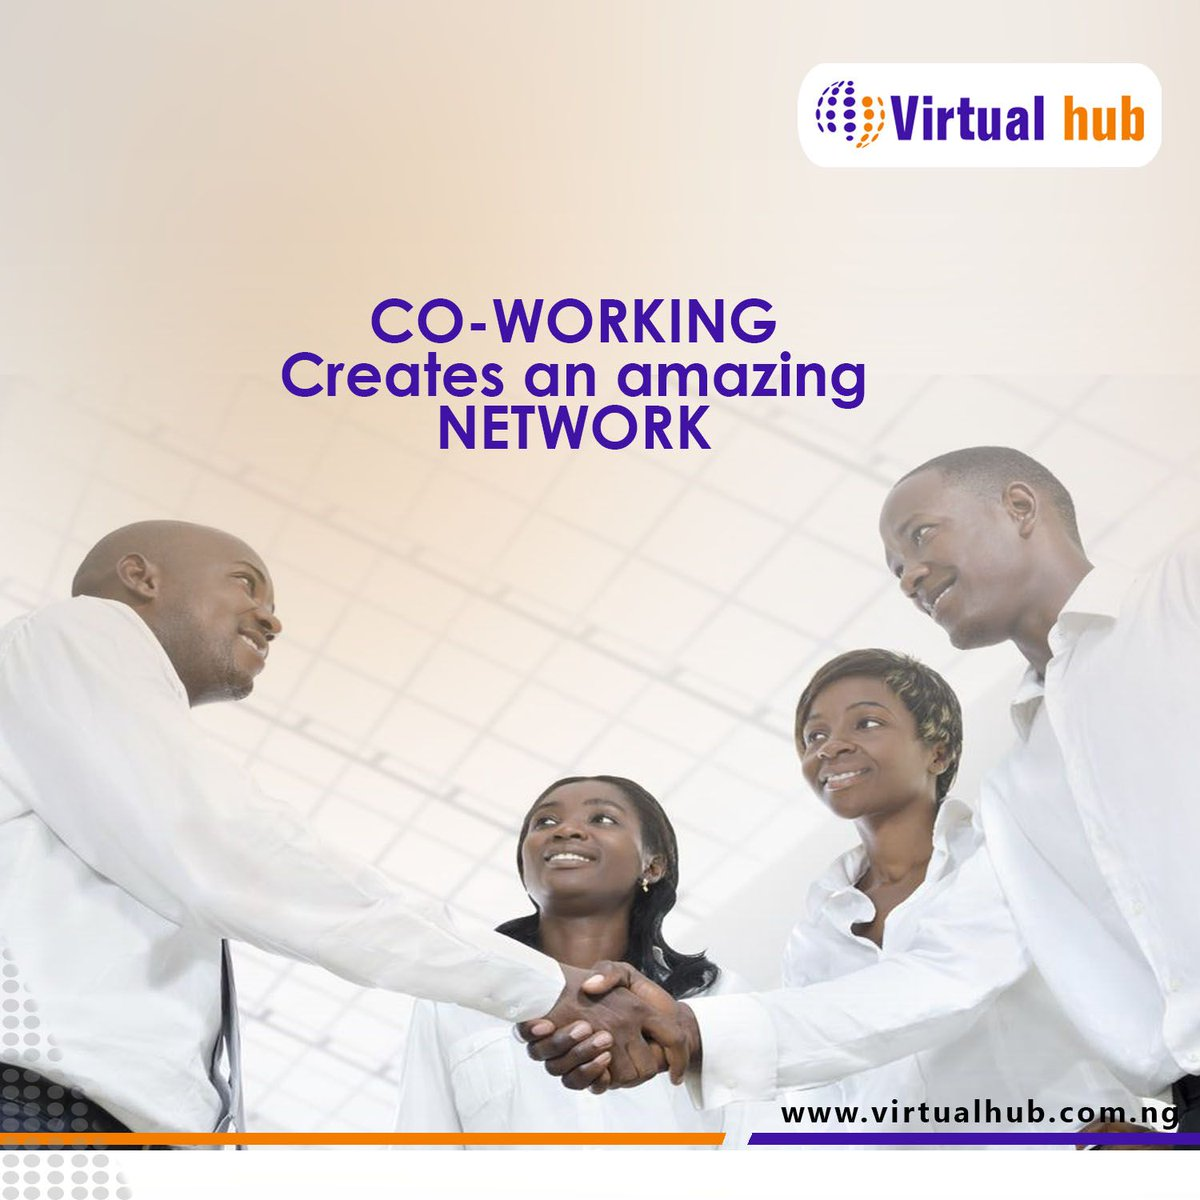 Coworking spaces will boost your network and in turn connect you with the most relevant people for your business. Contact us to get a Co-working space: 01-4482731, 09076942812.  #Coworking #Coworkingspace #OfficesInLagos #Entrepreneur #Startup #Freelance #ServicedOffices